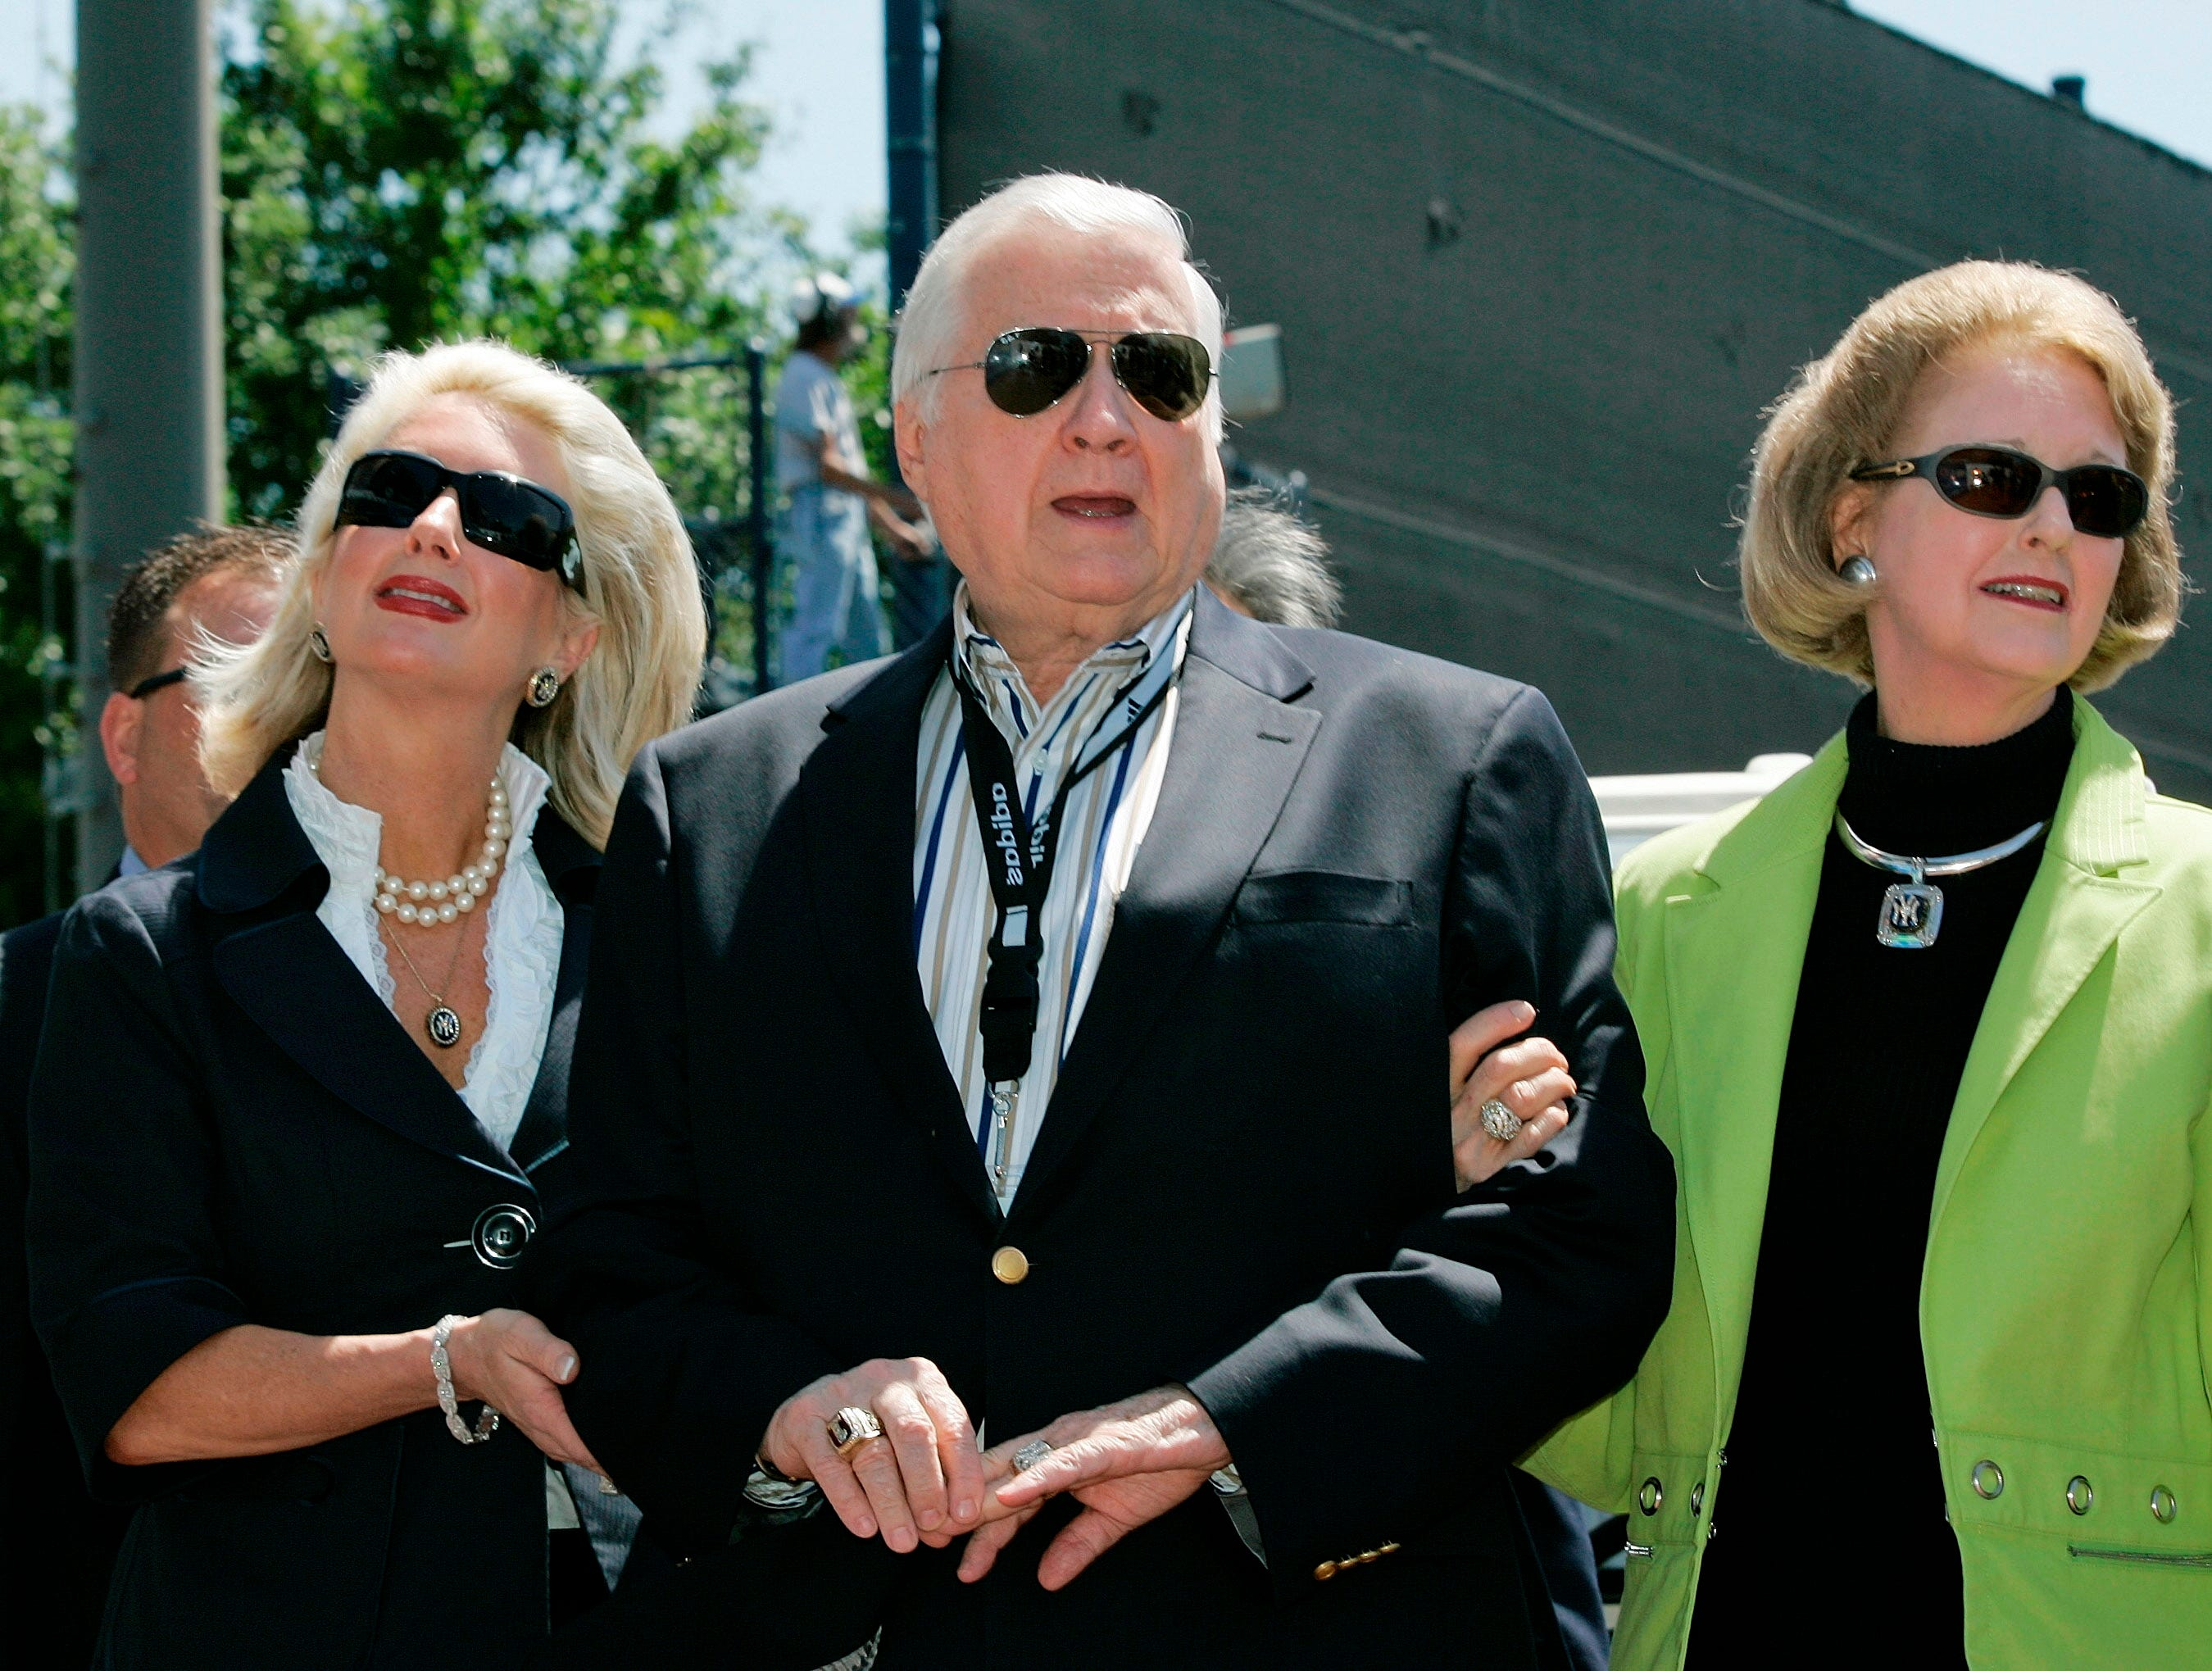 In this March 27, 2008 file photo, New York Yankees senior vice president for new stadium public affairs Jennifer Steinbrenner Swindal, left, holds onto her father and Yankees principal owner George Steinbrenner, center, along with his wife, Joan, during a pregame ceremony renaming Legends Field to George  M. Steinbrenner Field at spring training baseball, in Tampa, Fla.